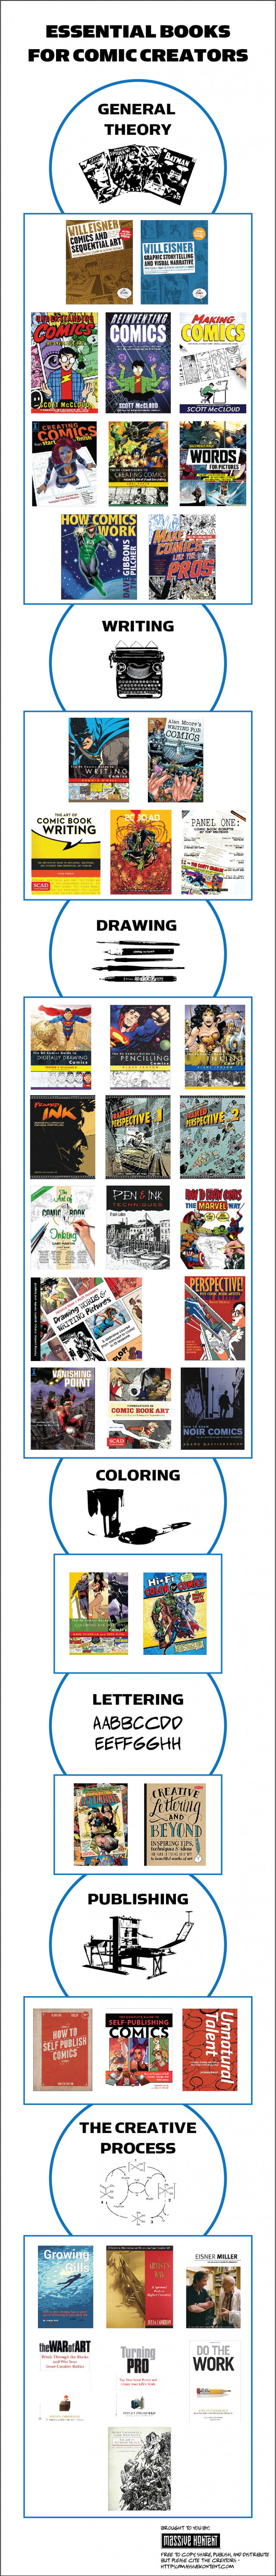 Essential Books For Comic Creators